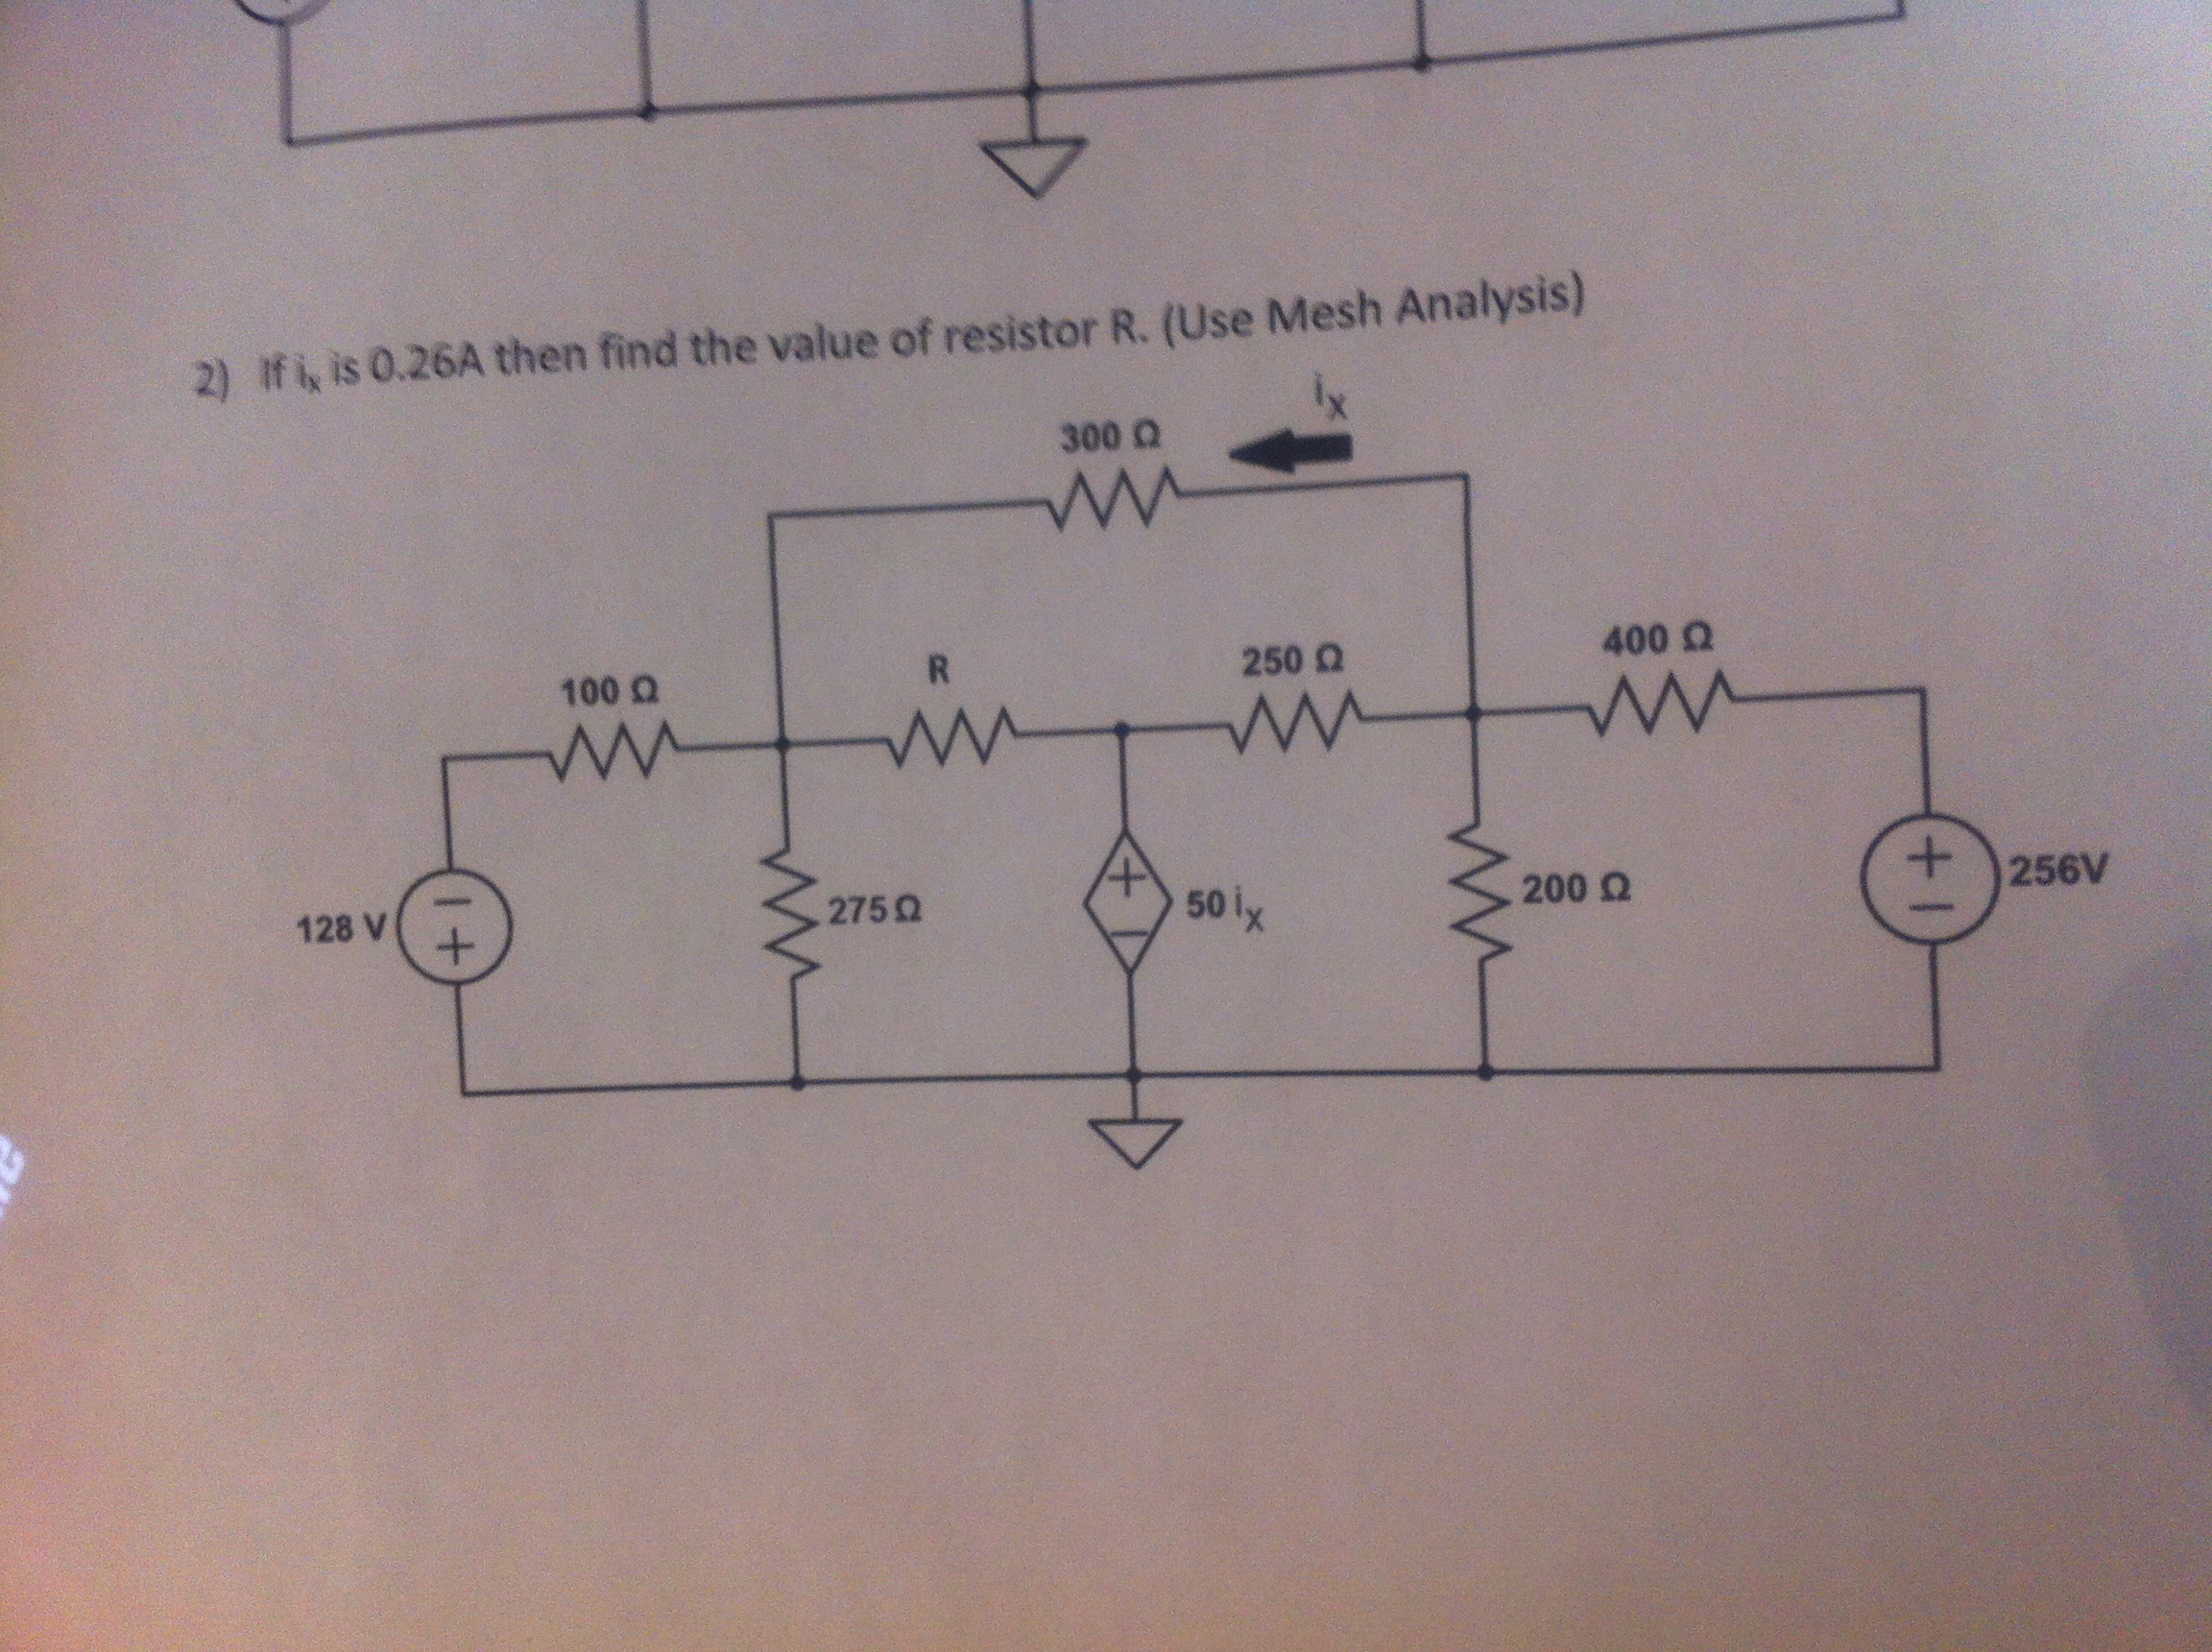 If ix is 0.26A then find the value of resistor R.